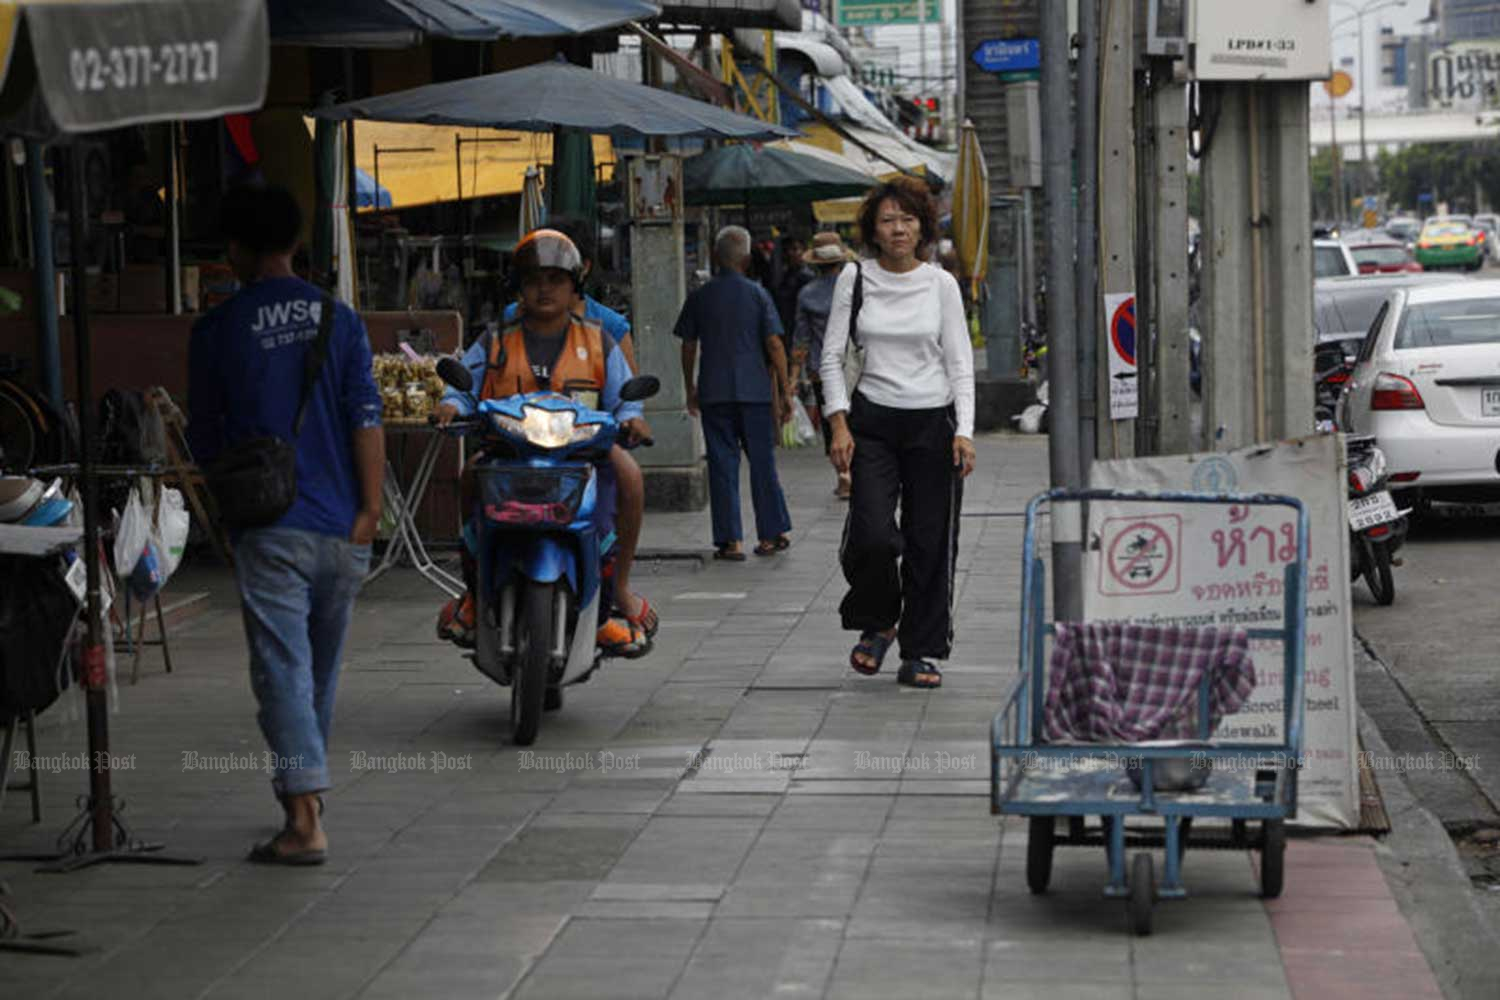 A motorcycle taxi driver travels along a footpath in Bangkok's Bung Kum district, weaving between pedestrians, on Nov 28 last year. (File photo)